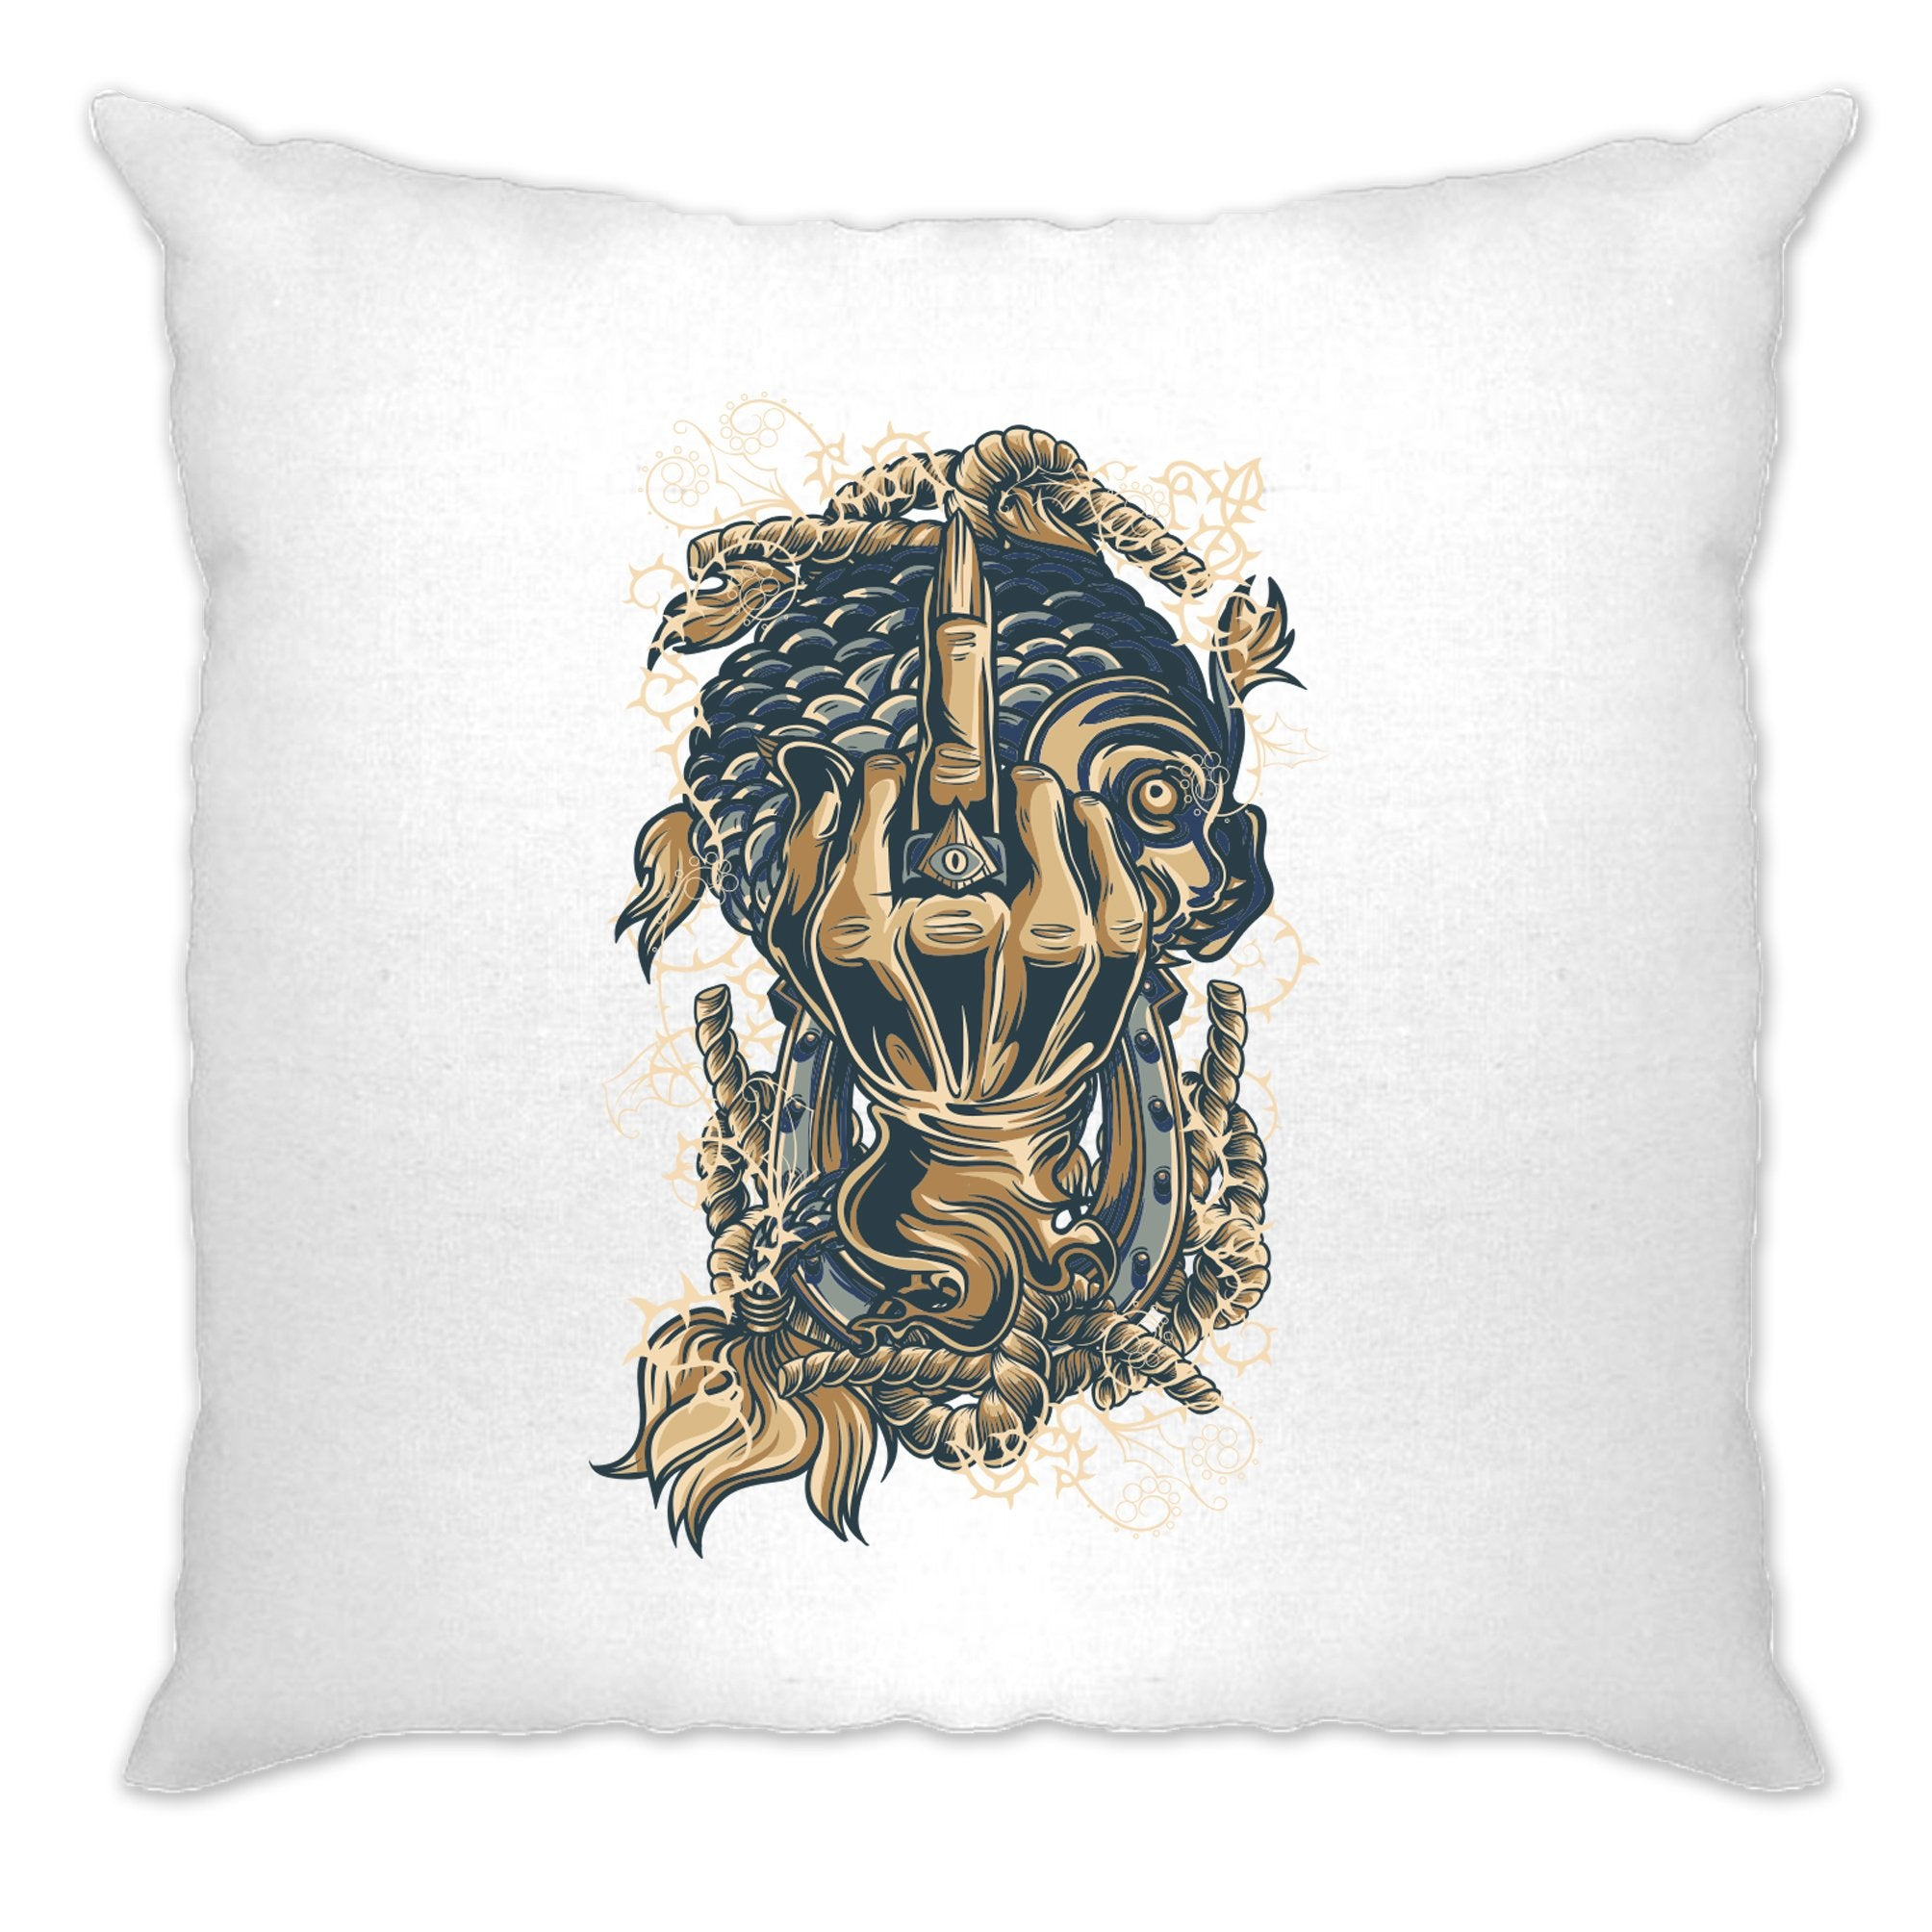 Gothic Sailor Art Cushion Cover Skeleton Swearing Graphic